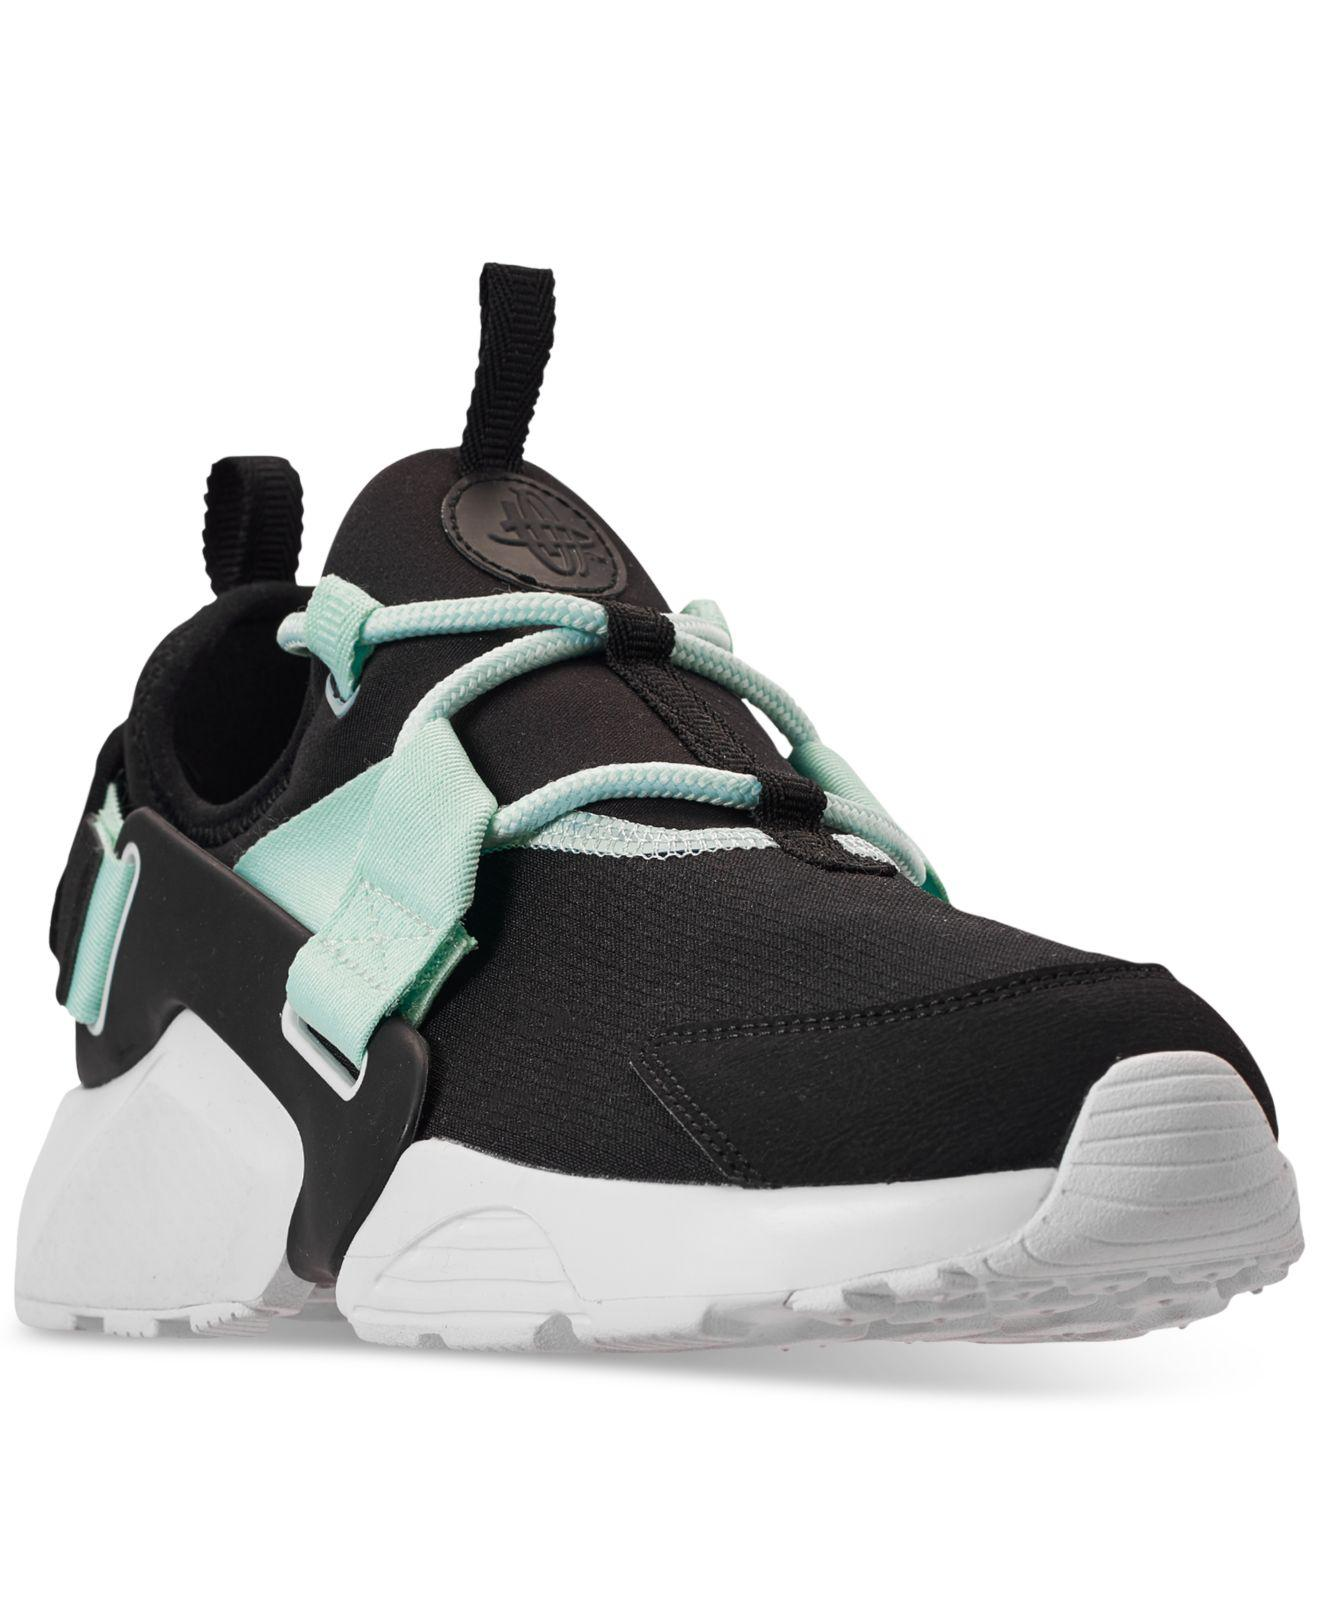 3932e6007dcc2 Lyst - Nike Air Huarache City Sneaker in Black - Save 25%